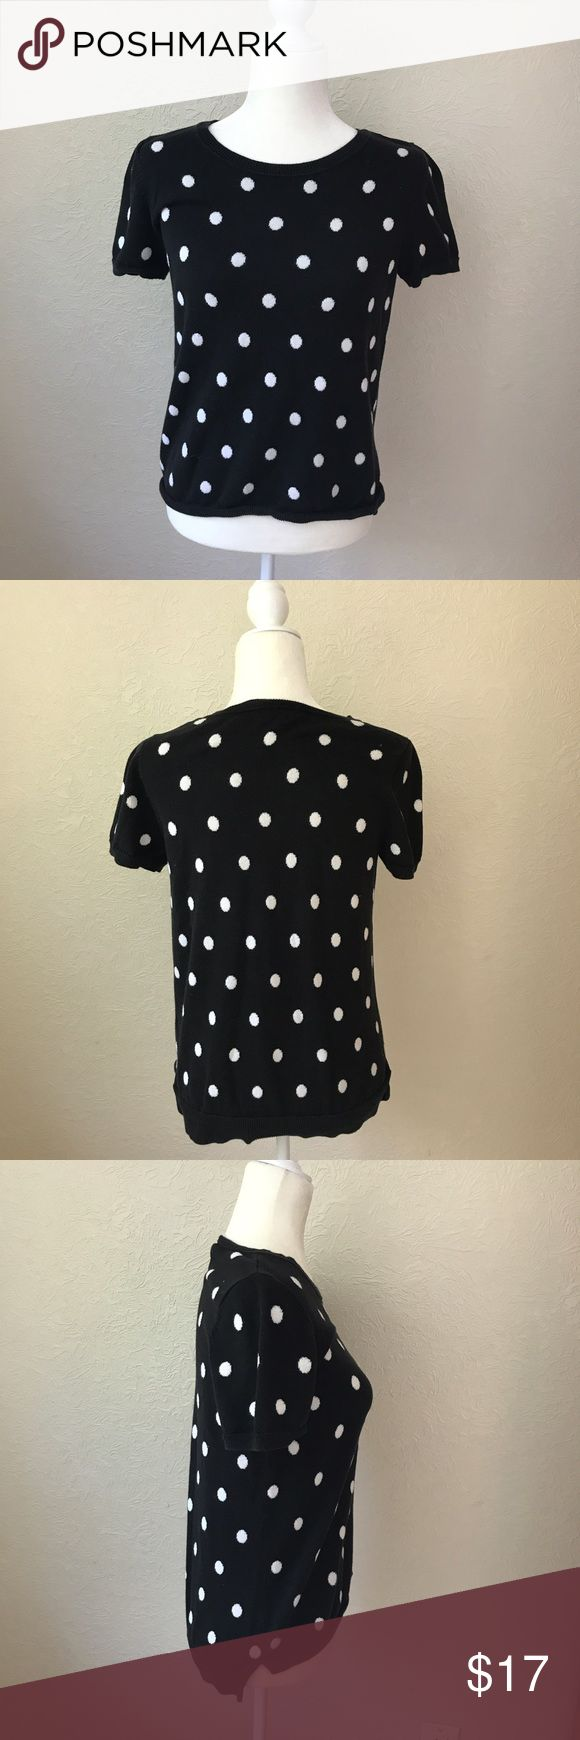 The Limited Hi-low polka dot short sleeve sweater Hi-low The Limited short sleeve sweater. Black with white polka dots. Size medium. 100% cotton. EXCELLENT condition! No rips, stains or tears! Front length is about 22.5 inches and the back length is approx 24.5 inches. The bust is about 17.75 inches (from armpit to armpit) The Limited Tops